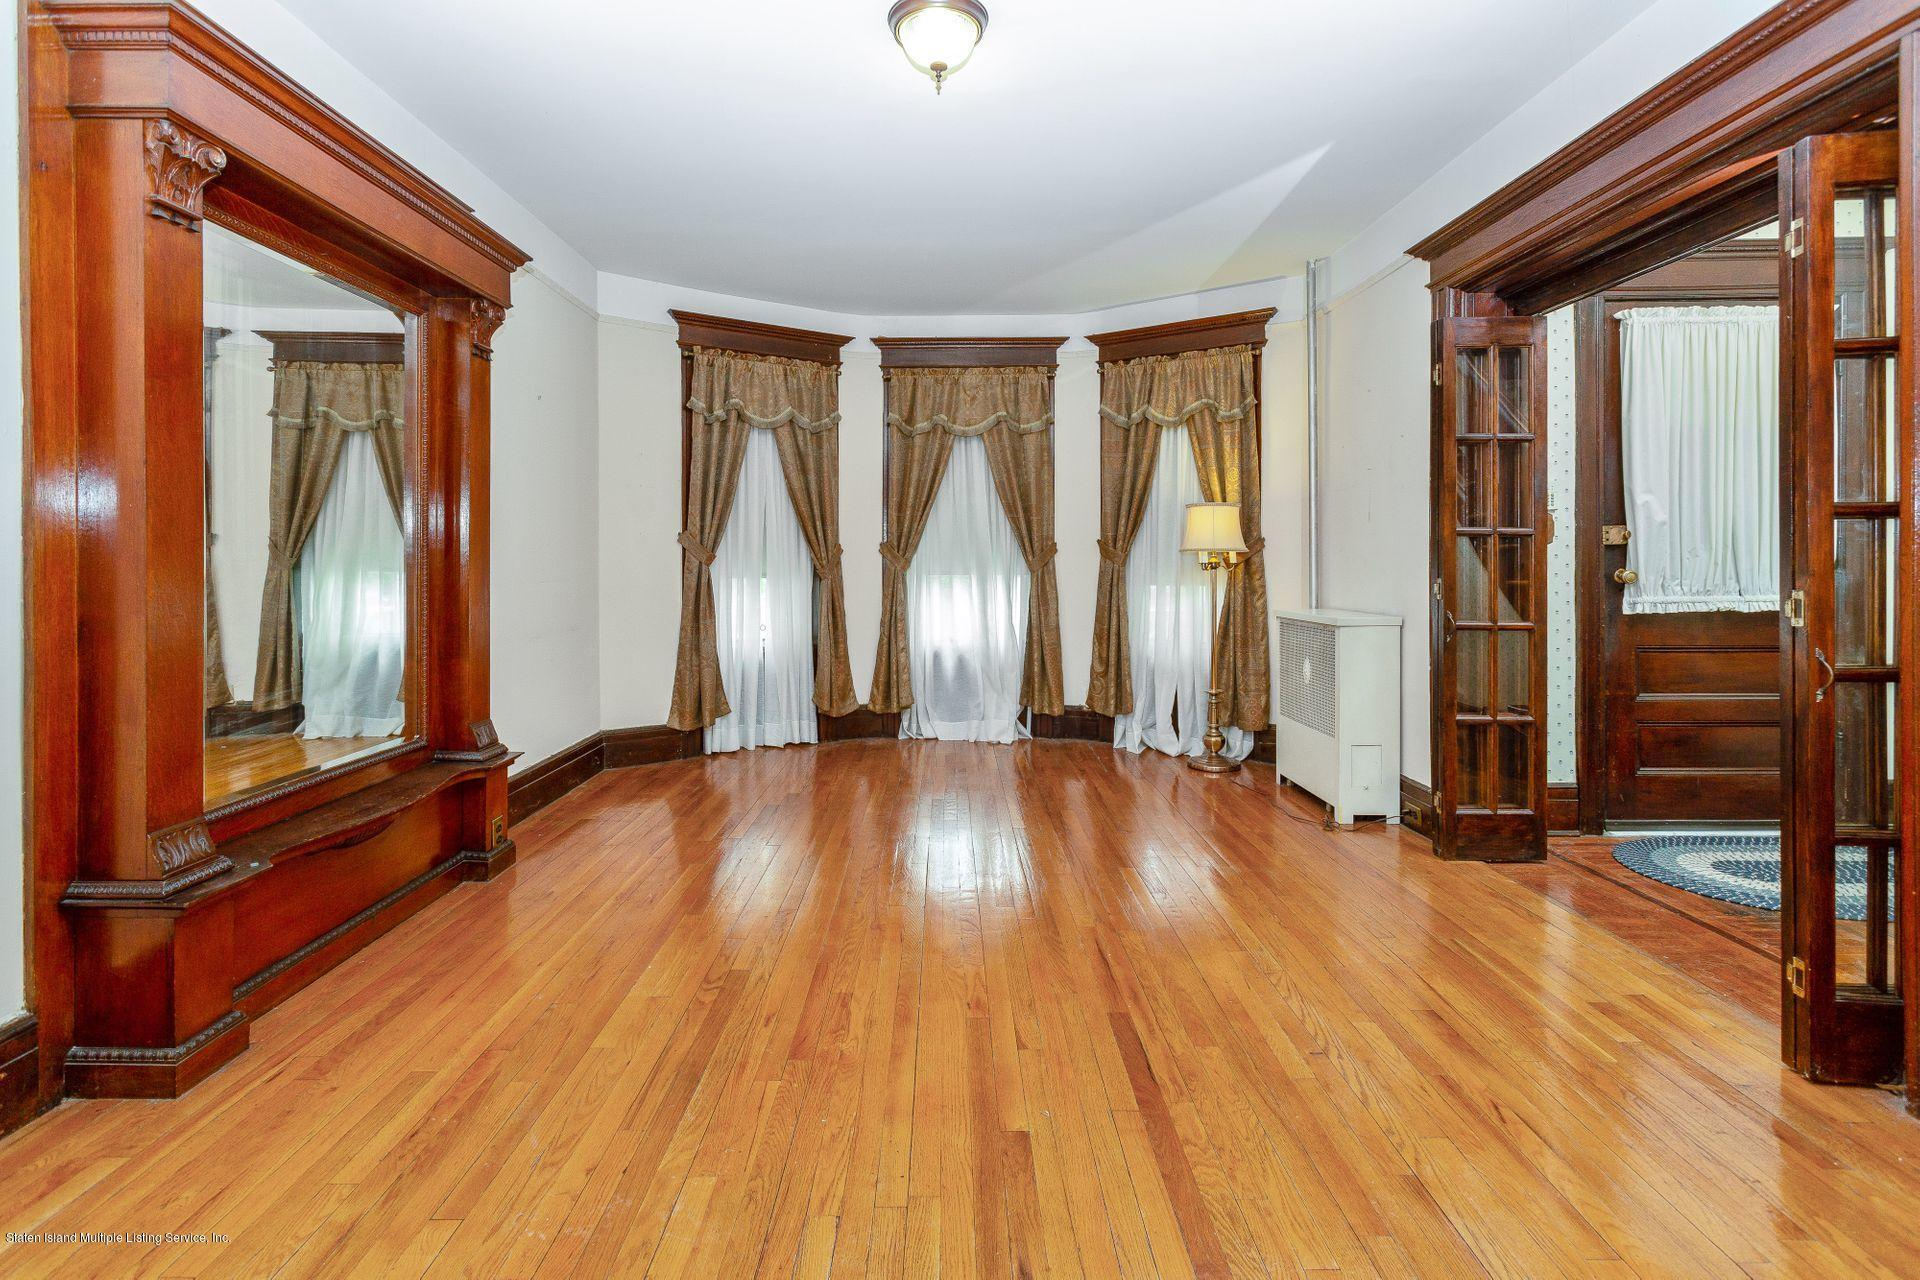 Single Family - Attached 83 Chester Avenue  Brooklyn, NY 11218, MLS-1131841-8